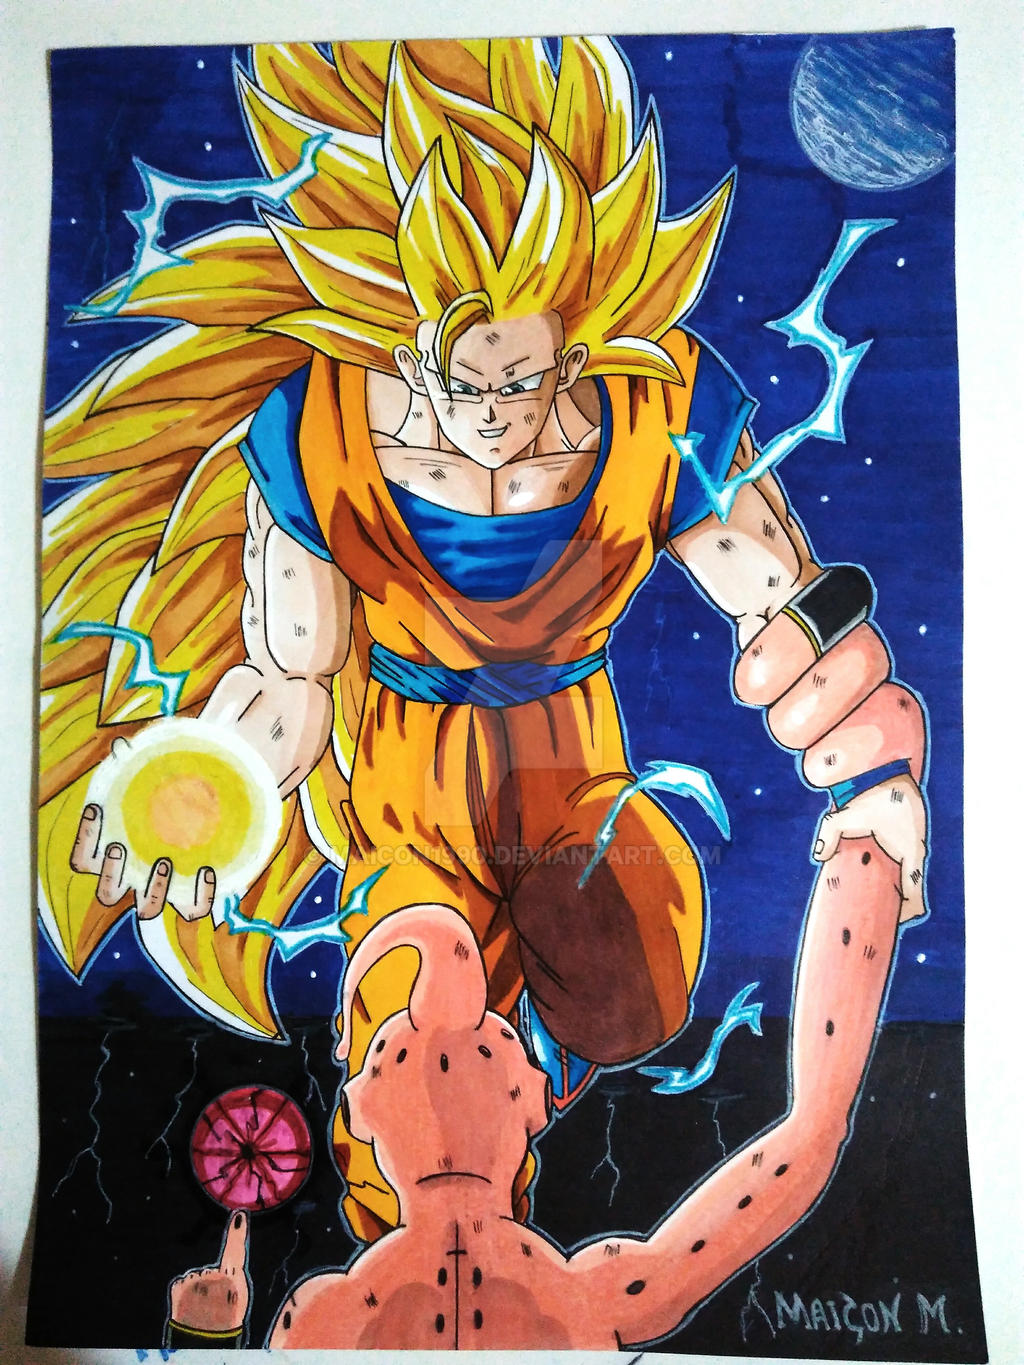 goku ssj3 vs kid buu by maicon1990 on deviantart